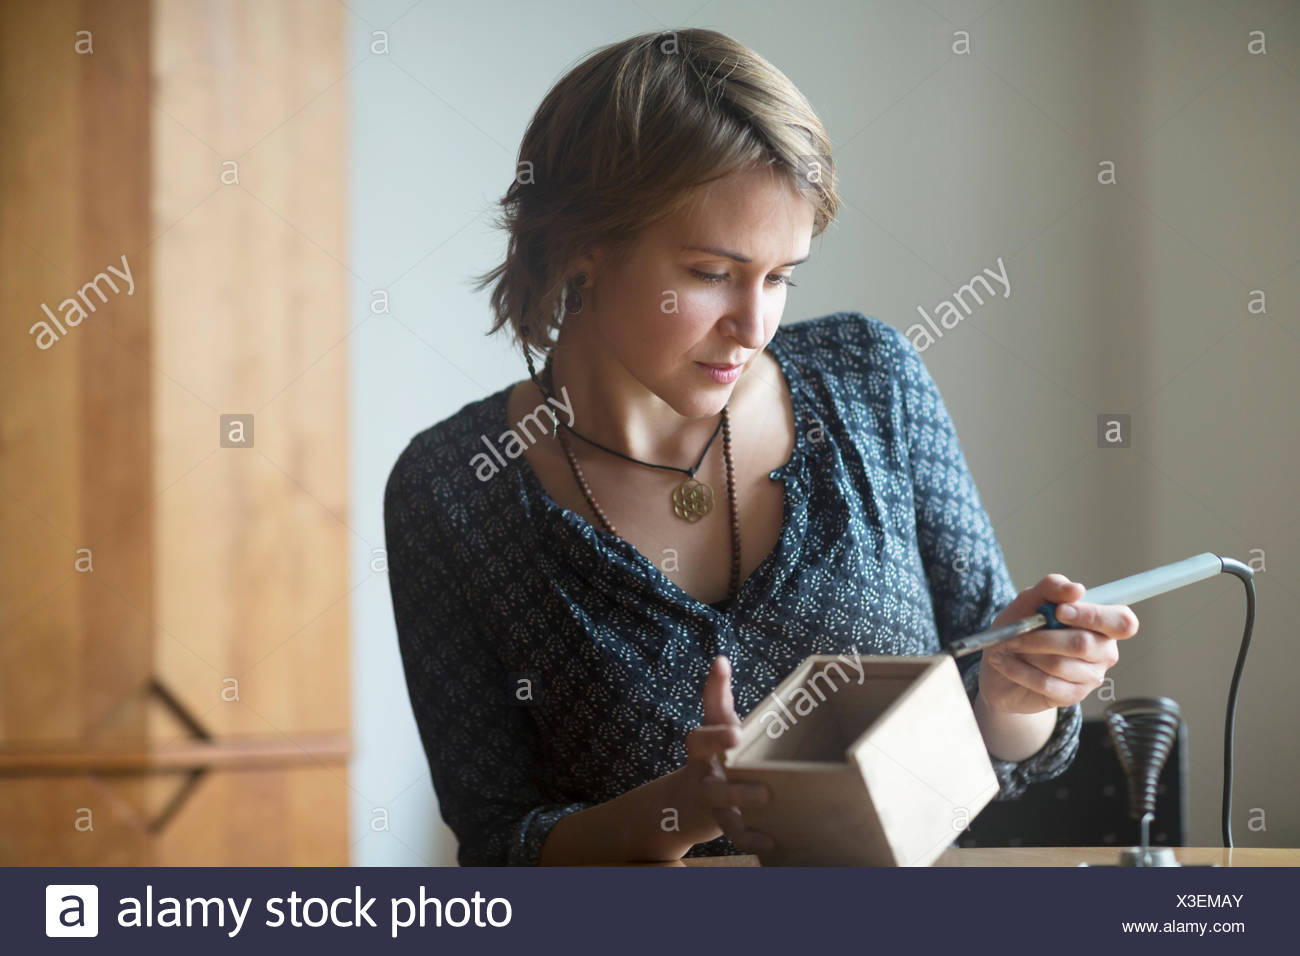 Young woman soldering something - Stock Image